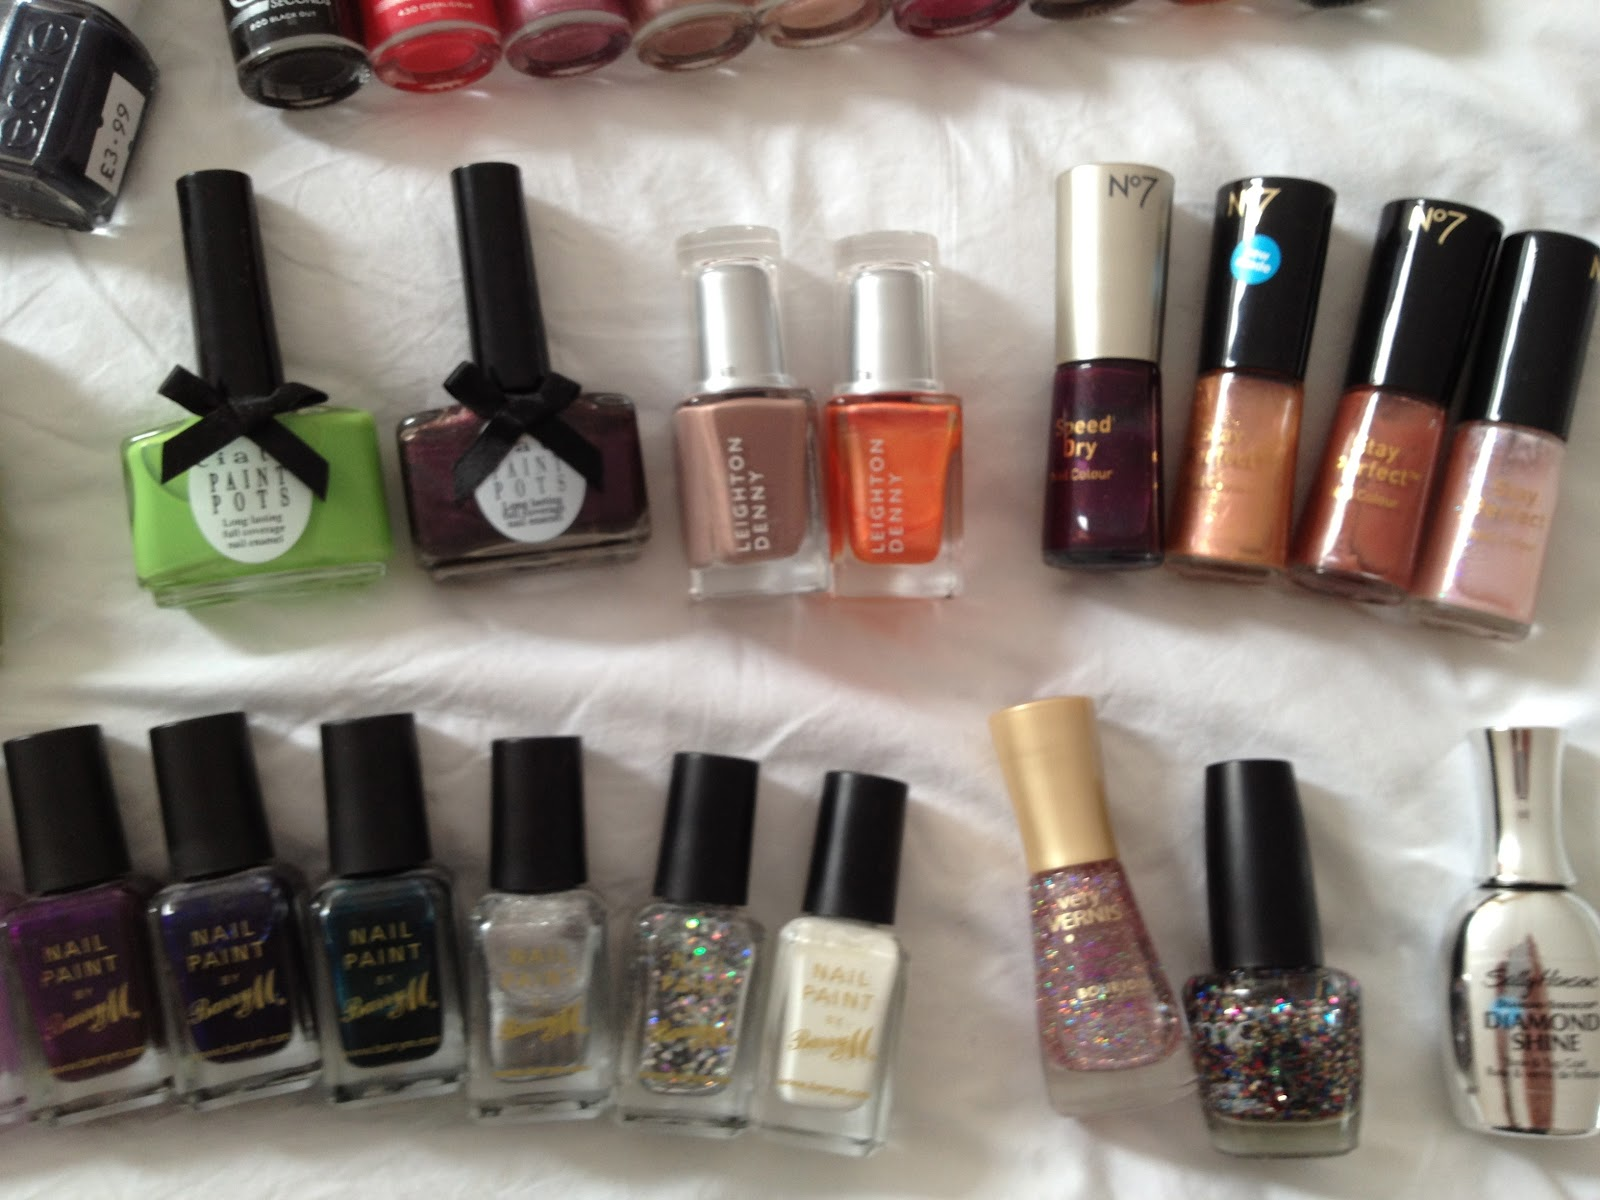 FLABBY FACE OF MAKEUP: Nail polish collection